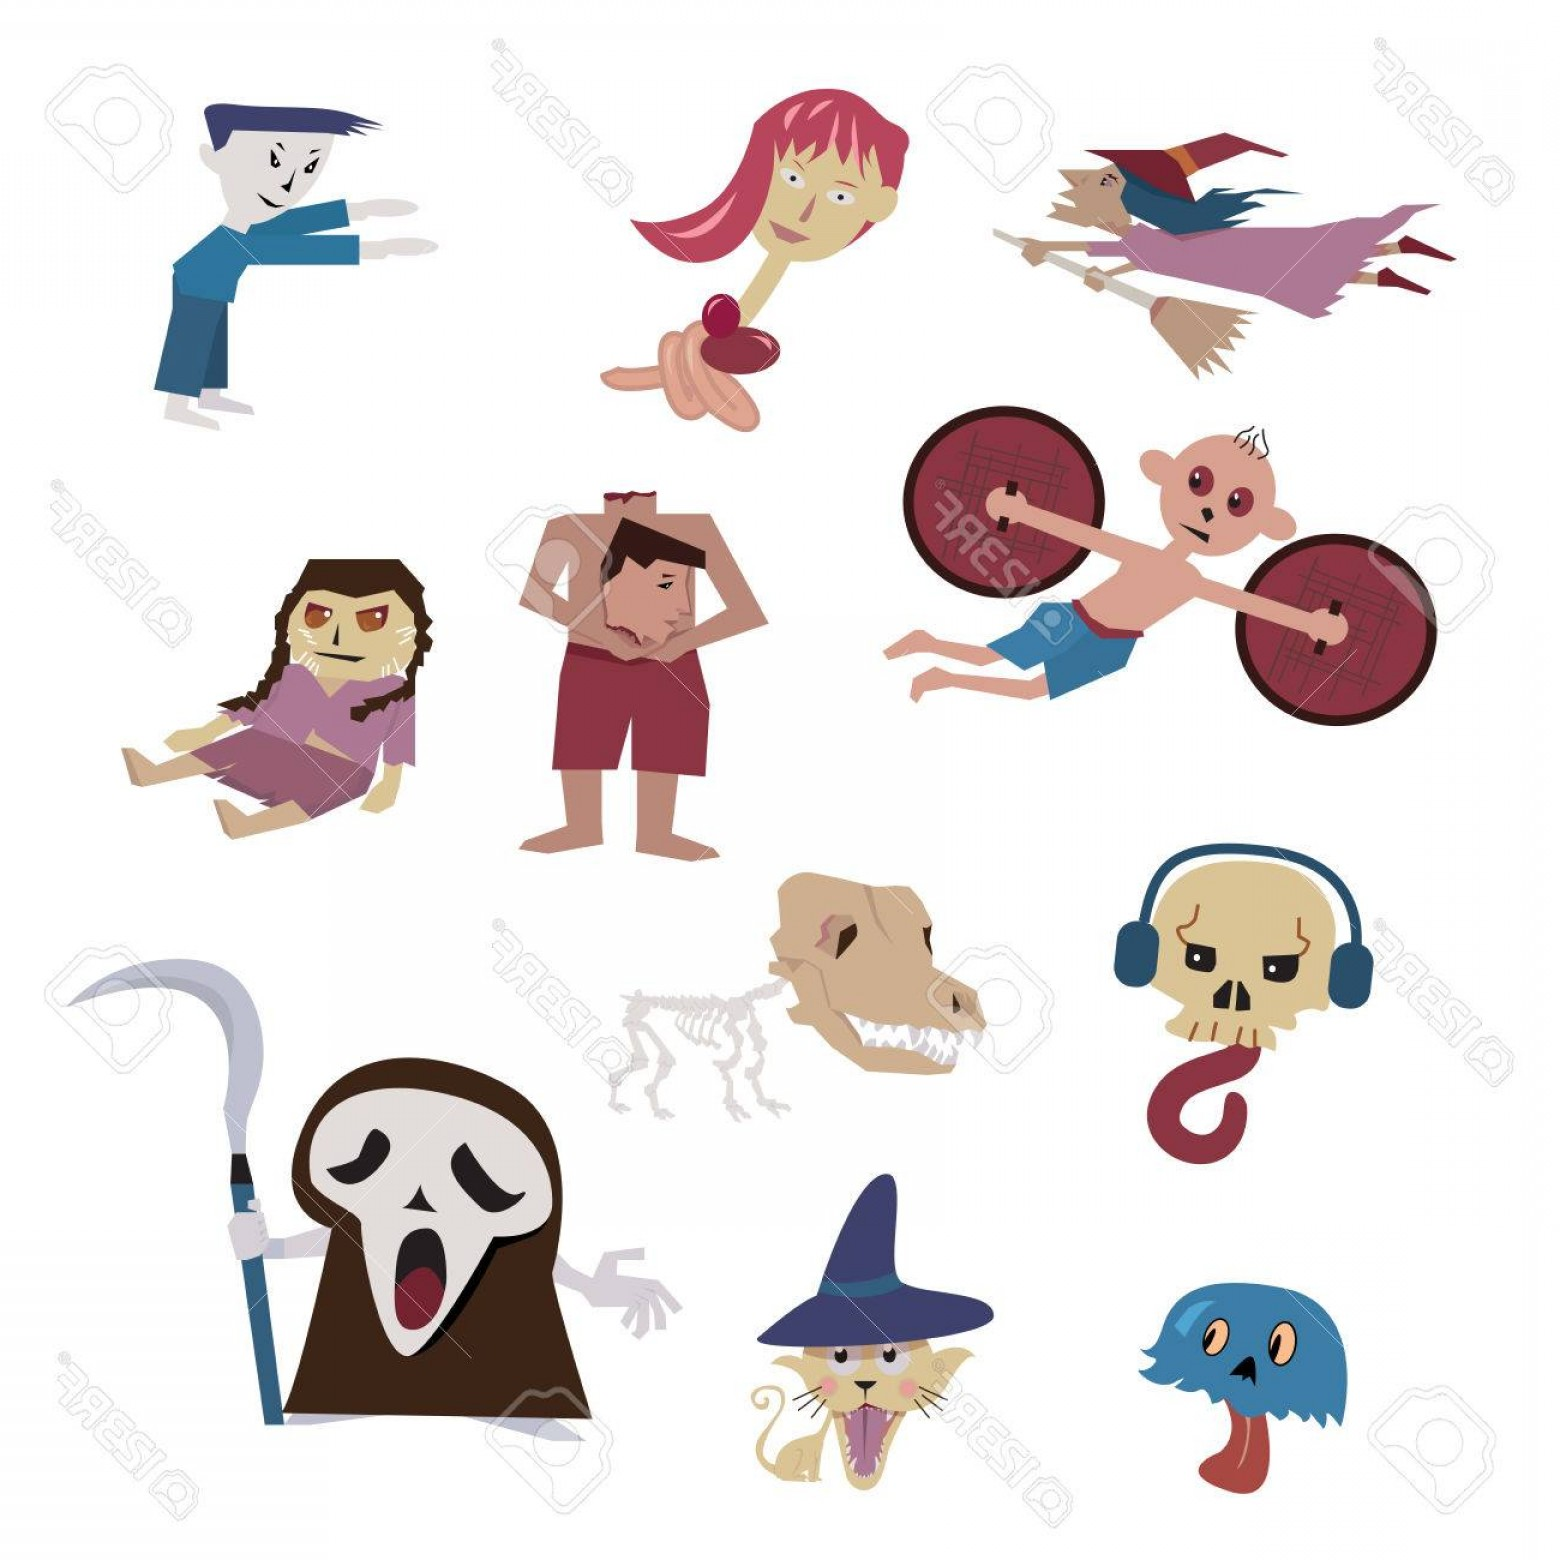 Headless Scary Halloween Skeletons Vectors: Photostock Vector Set Of Halloween Characters Vector Dog Skeleton Death Witch Headless Ghost From Many Culture